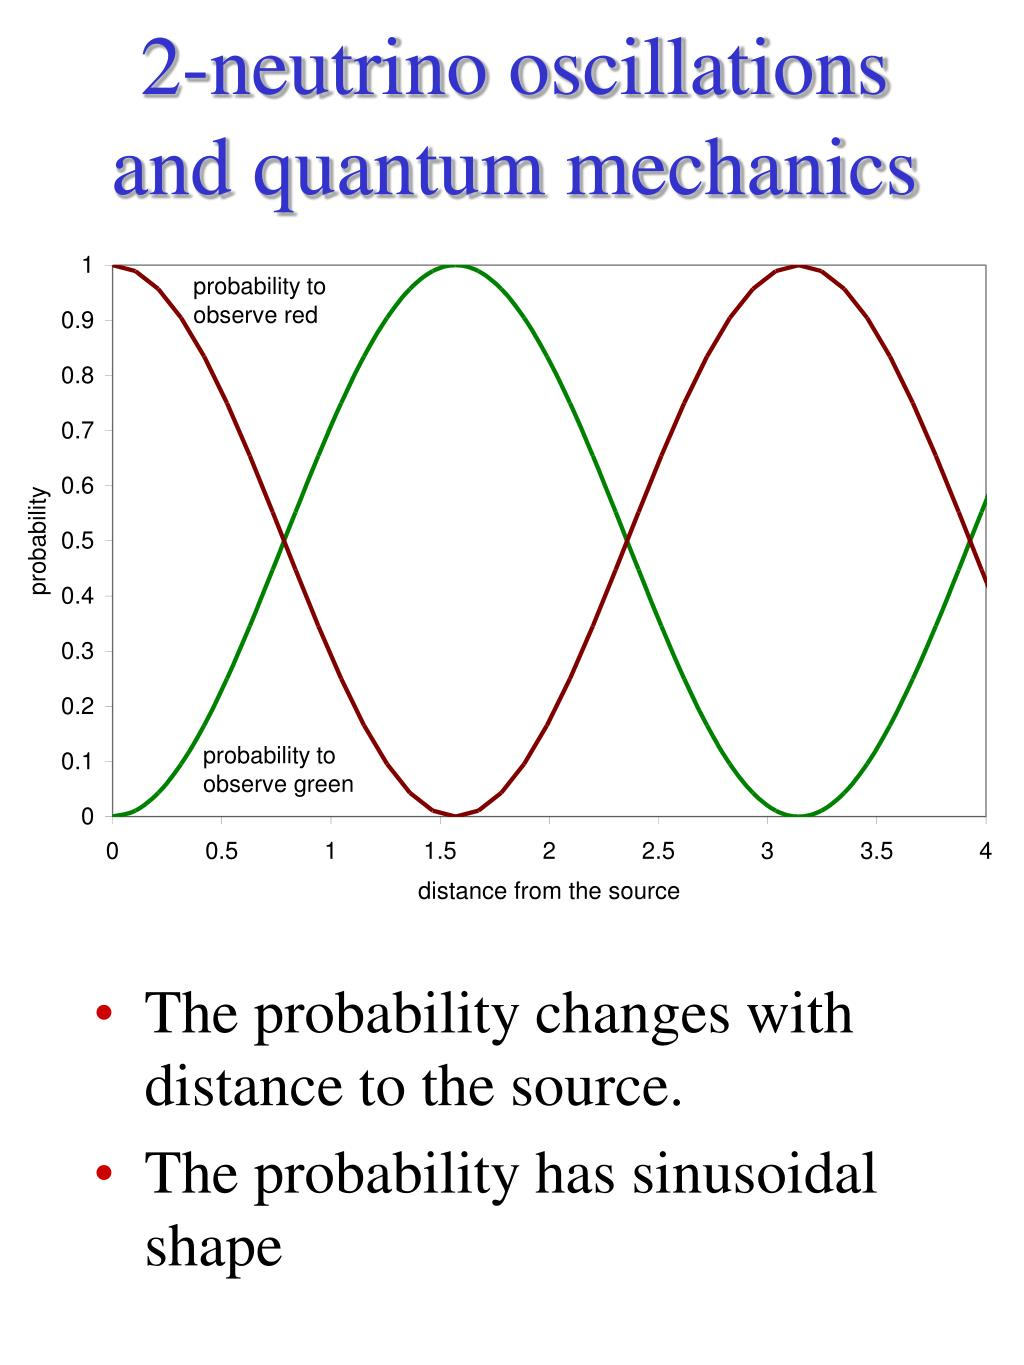 2-neutrino oscillations